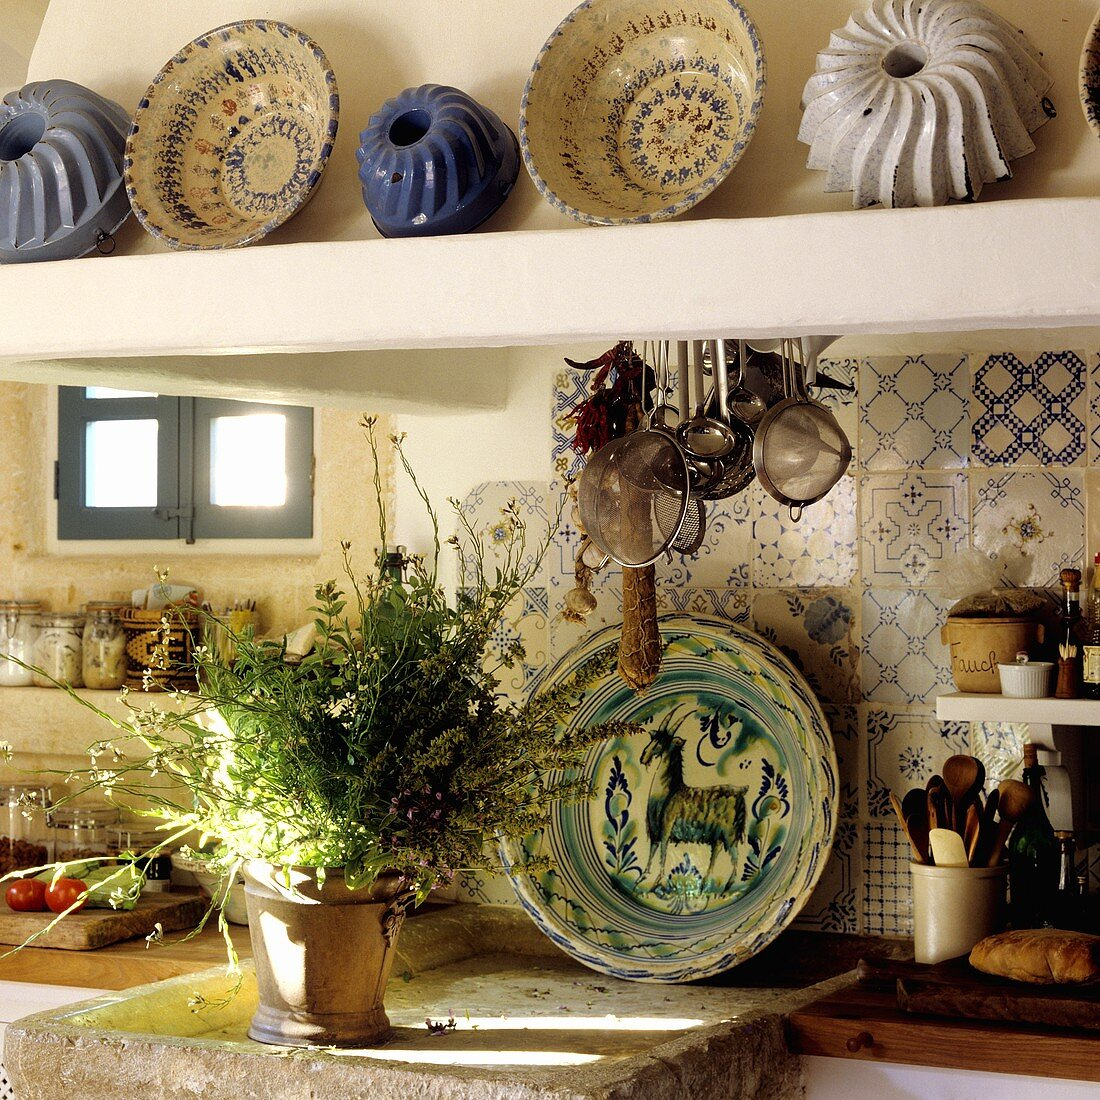 A pot of herbs on a stone shelf and antique cake tins on the mantelpiece